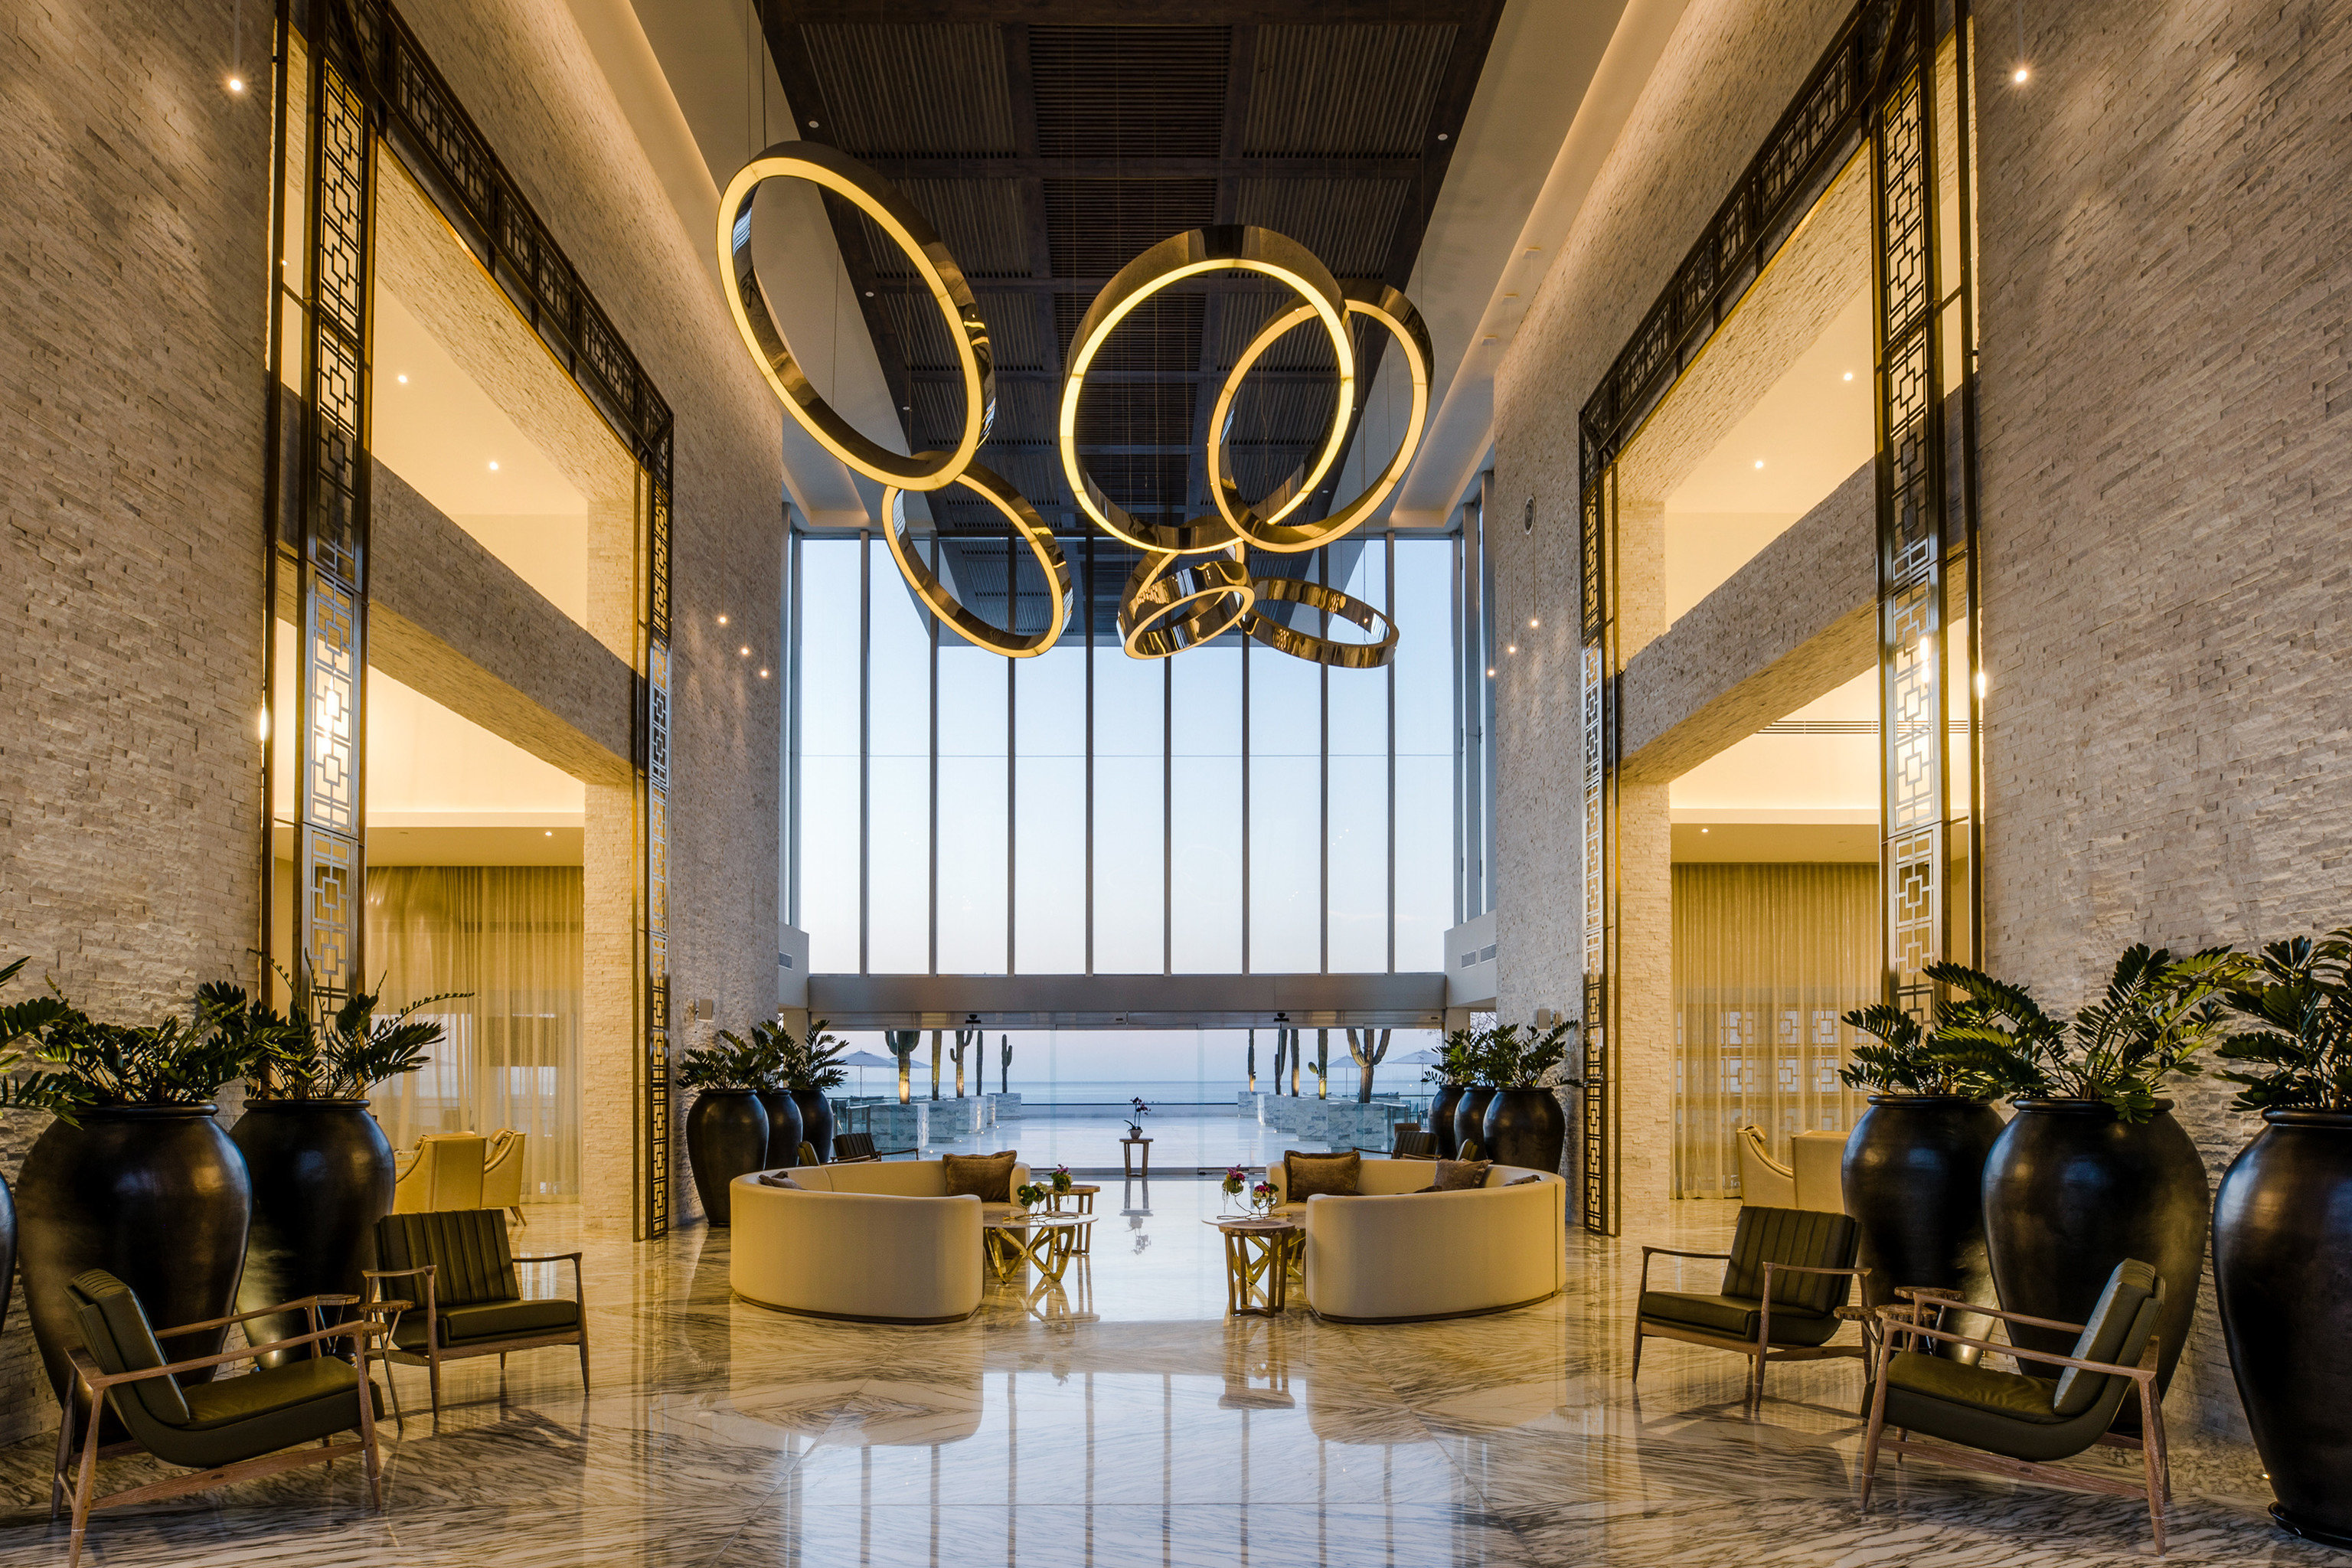 Adult-only All-Inclusive Resorts Cancun Hotels Mexico Lobby interior design window ceiling